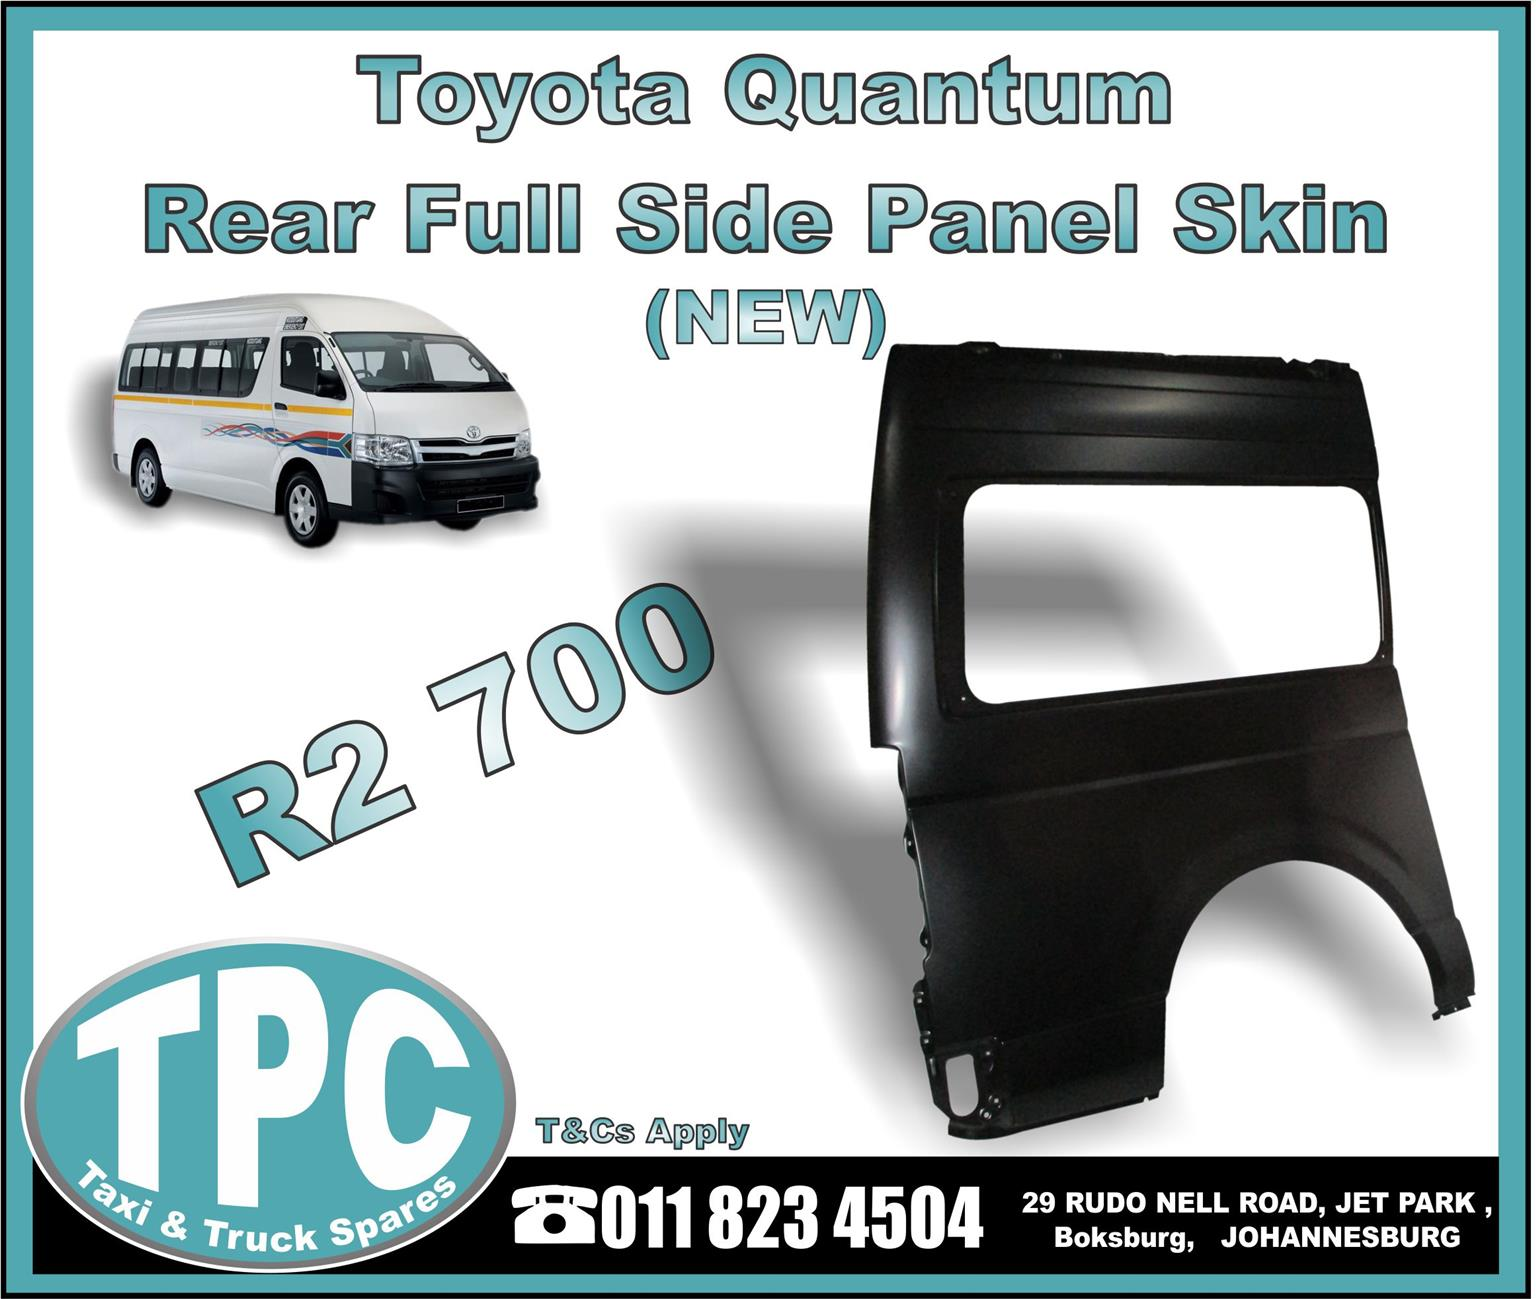 Toyota Quantum Rear Full Side Panel Skin - New And Used Quality Replacement Taxi Spare Parts - TPC